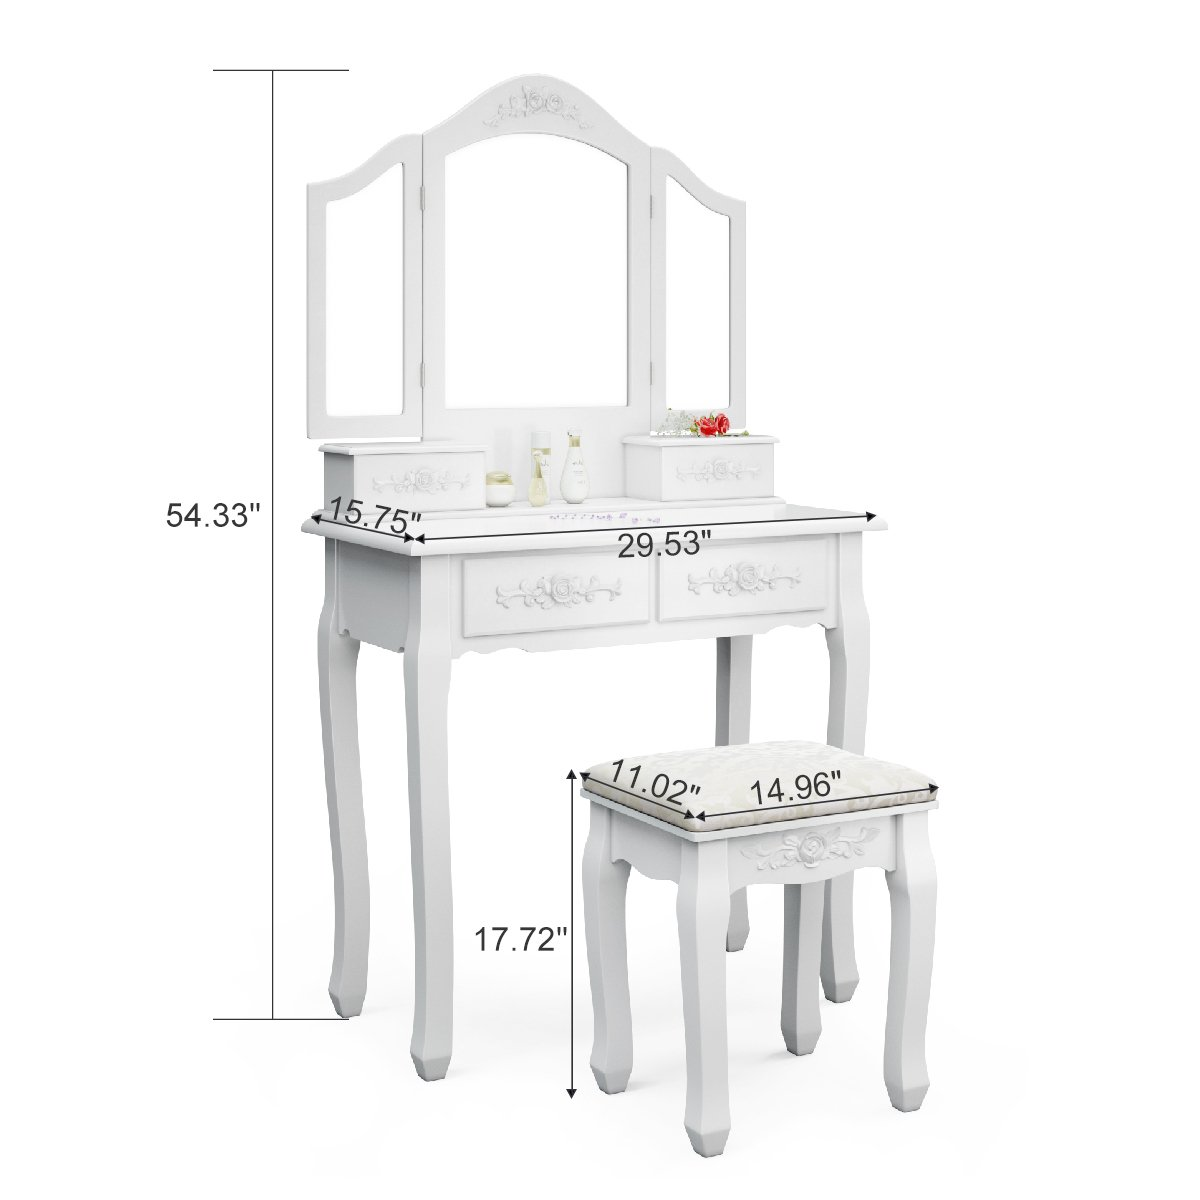 Tribesigns Wood Makeup Vanity Table Set with 3 Mirror and Stool Bedroom Dressing Table Dresser Desk, White 5